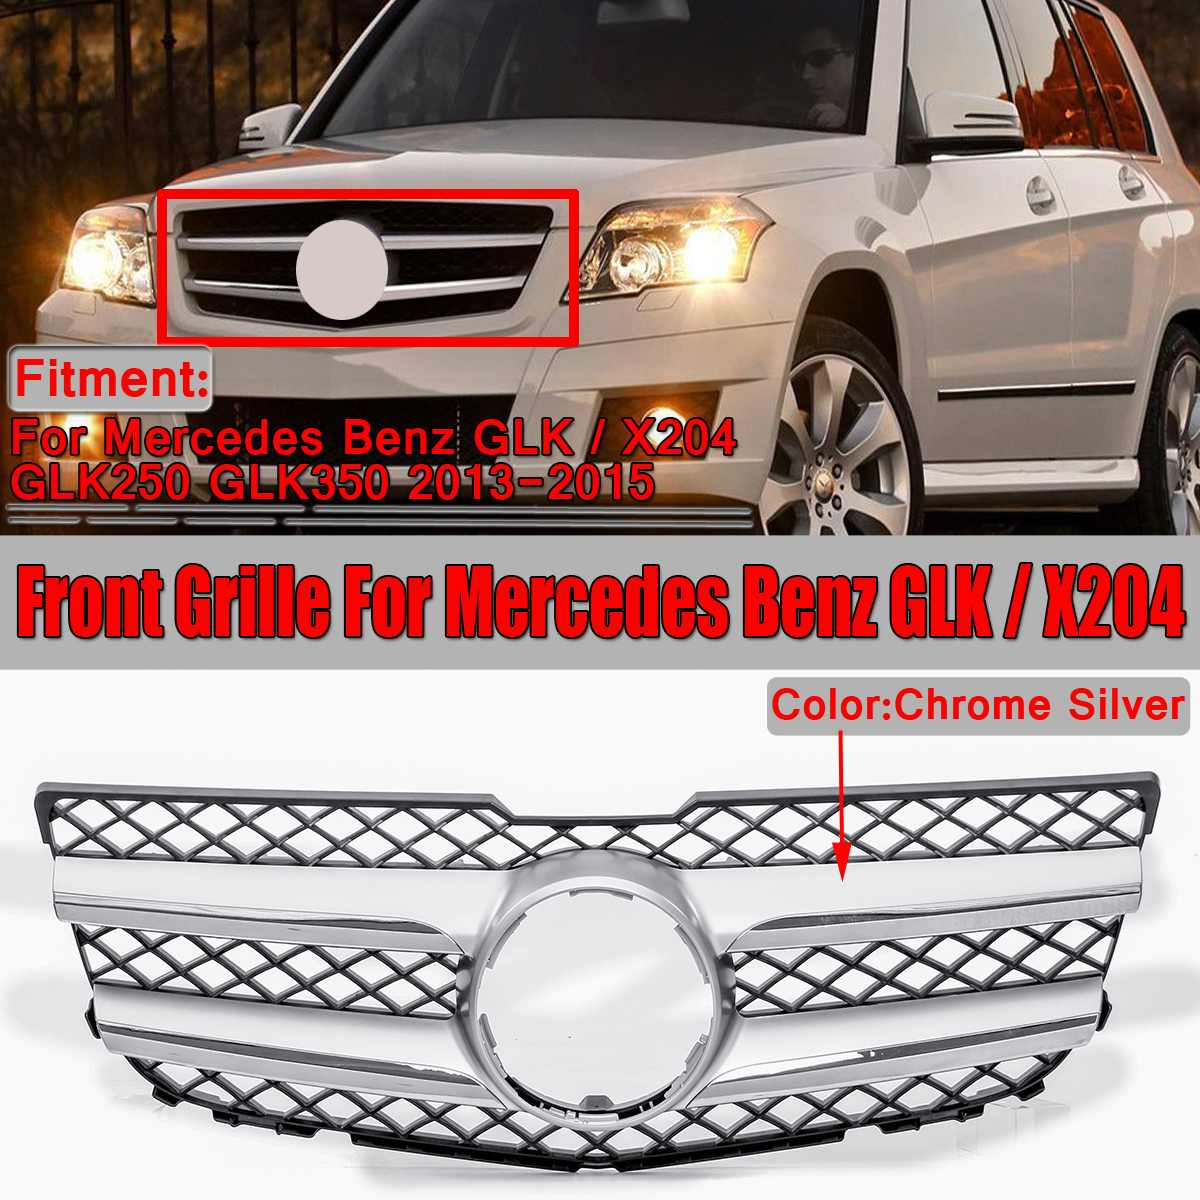 New Chrome Silver Car Front Upper Bumper Grill Grille For Mercedes For Benz GLK / X204 GLK250 GLK350 2013 2014 2015 Racing Grill